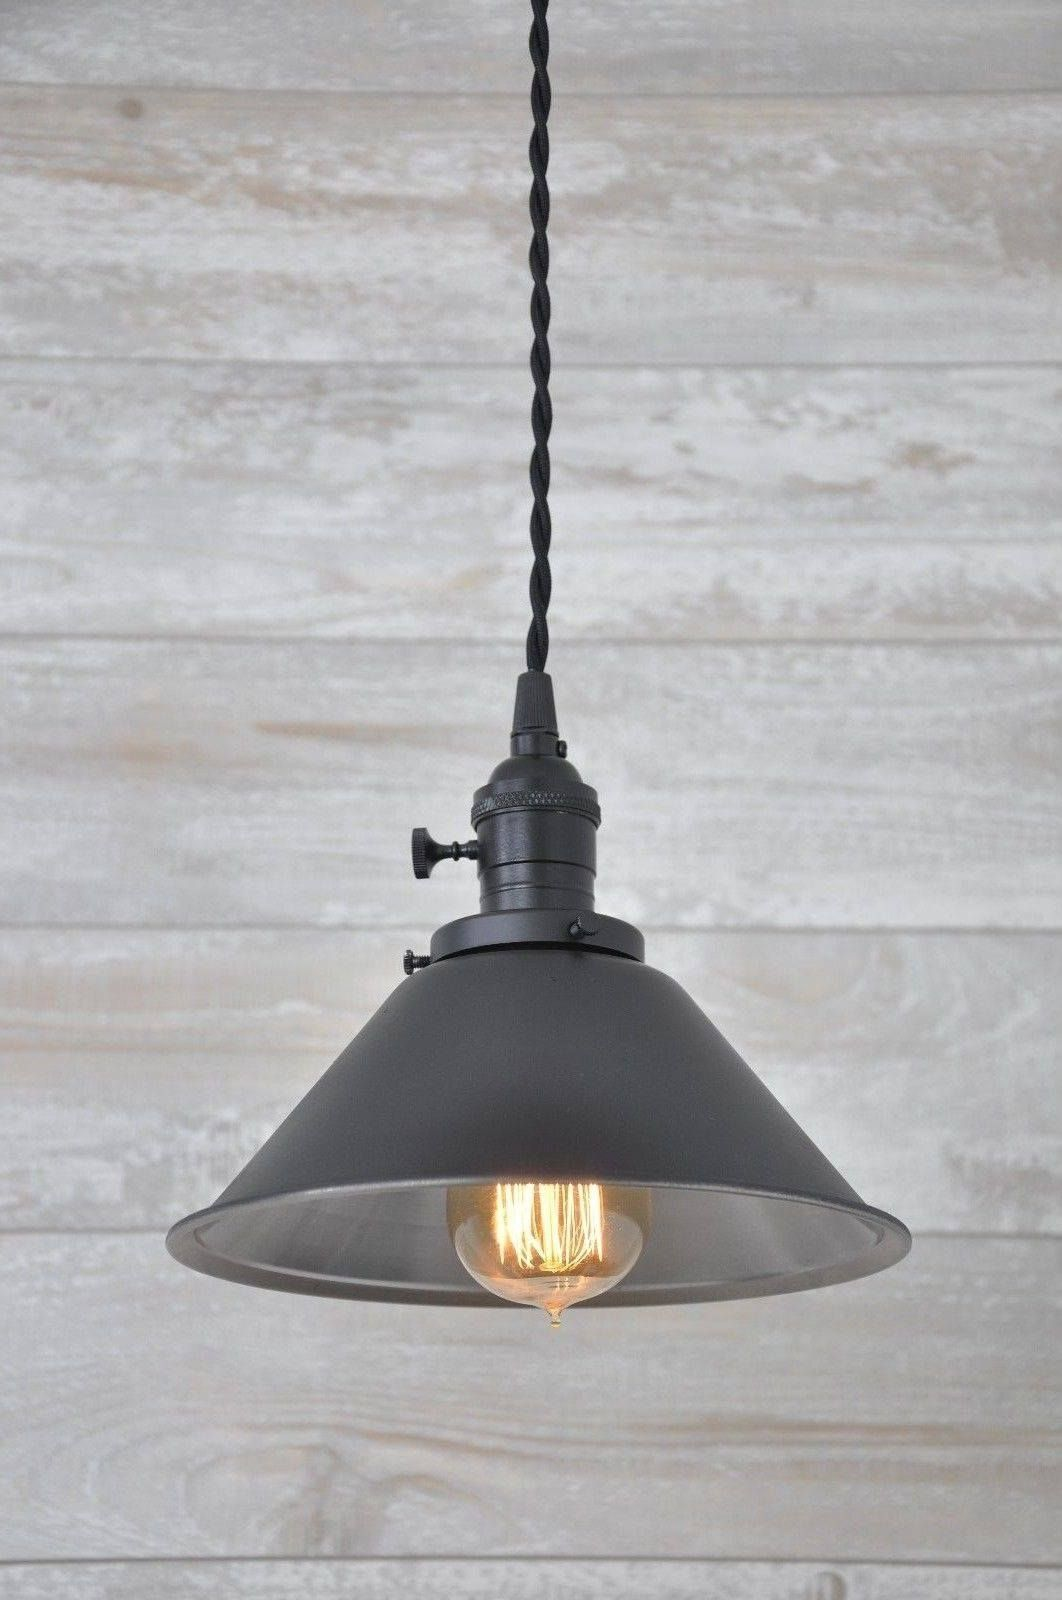 20+ Home Decor Trends That Made A Statement In 2016 | Lights ...